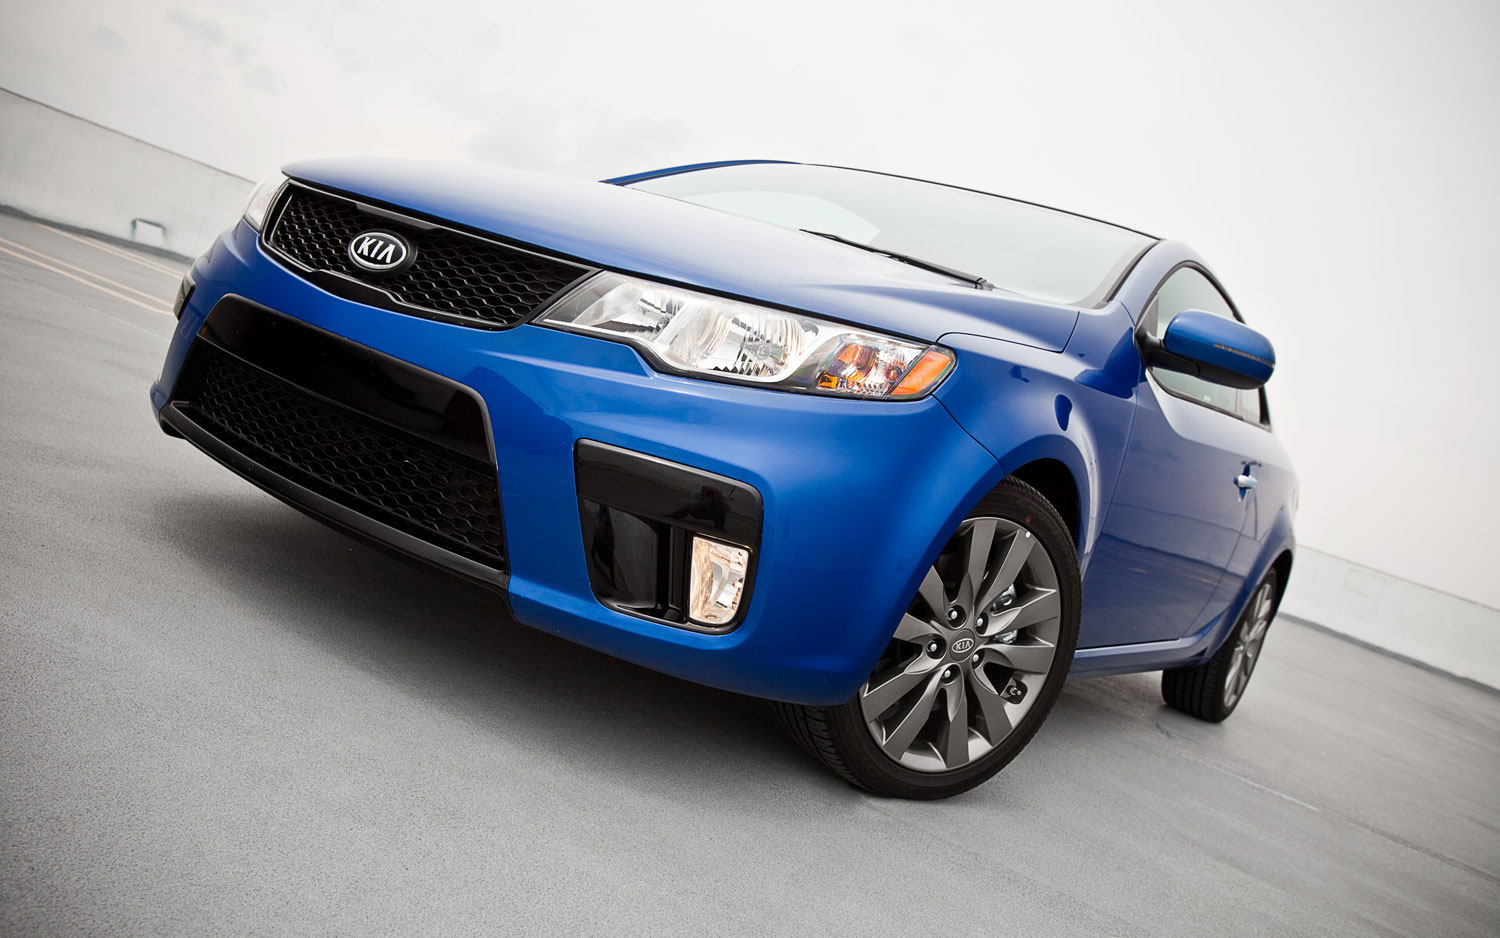 2011 Kia Forte Koup SX Front Slight Left View